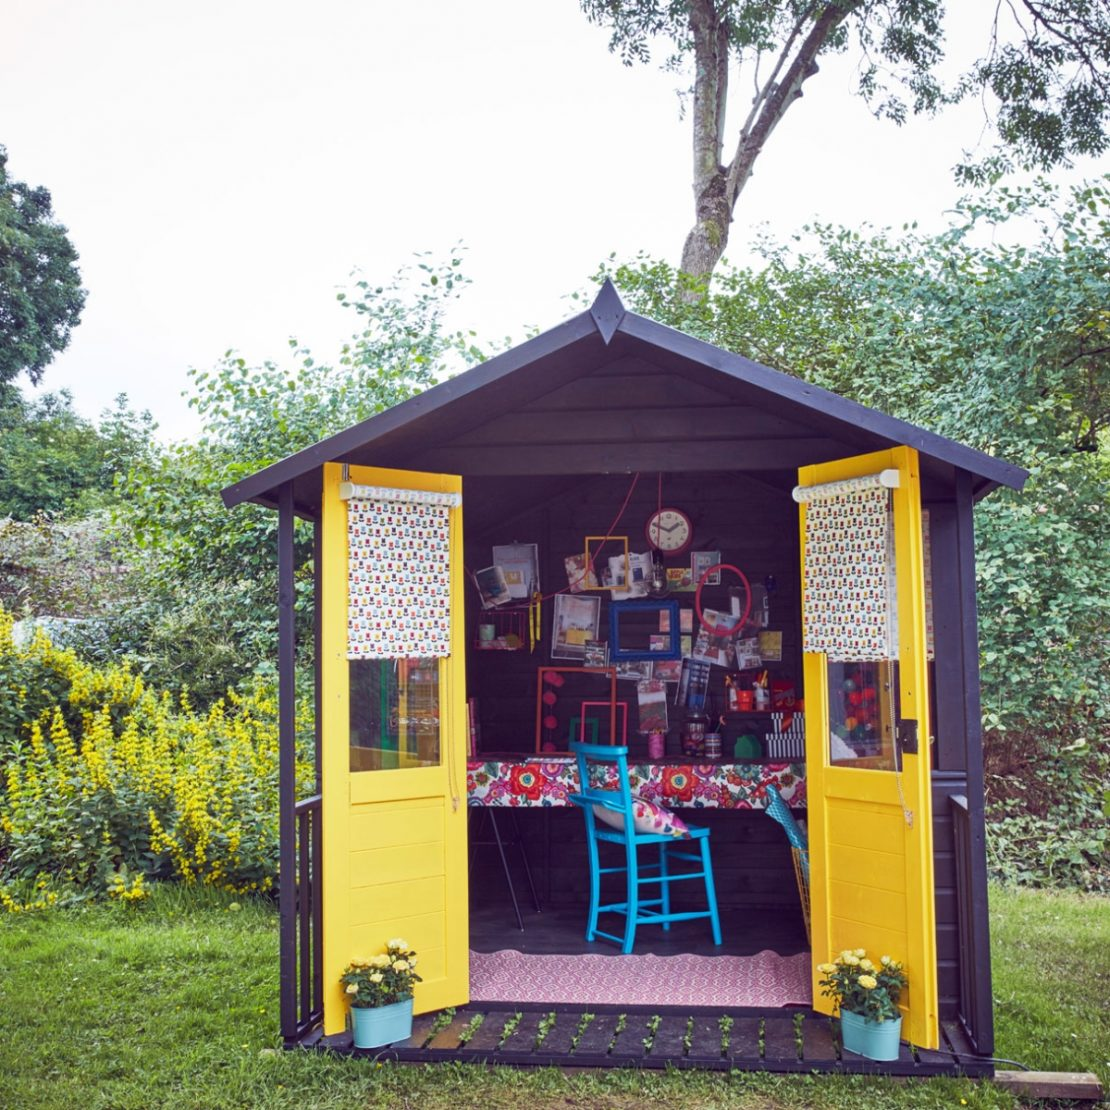 a wooden cabin with door painted bright yellow and an artistic collection of pictures and frames on the wall